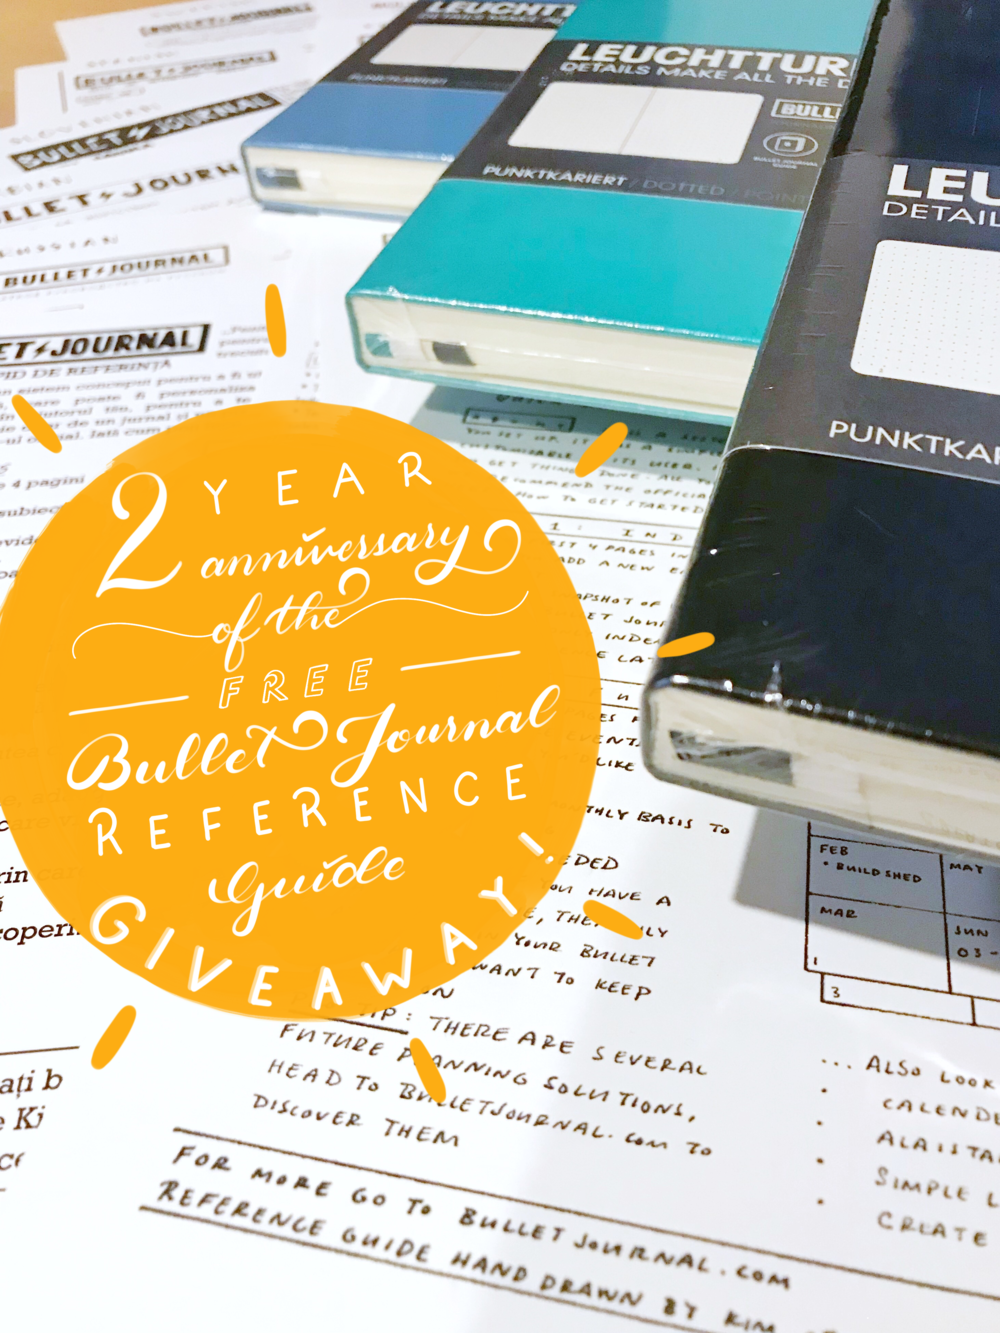 Tiny Ray of Sunshine 2 Year Bullet Journal Reference Guide Giveaway